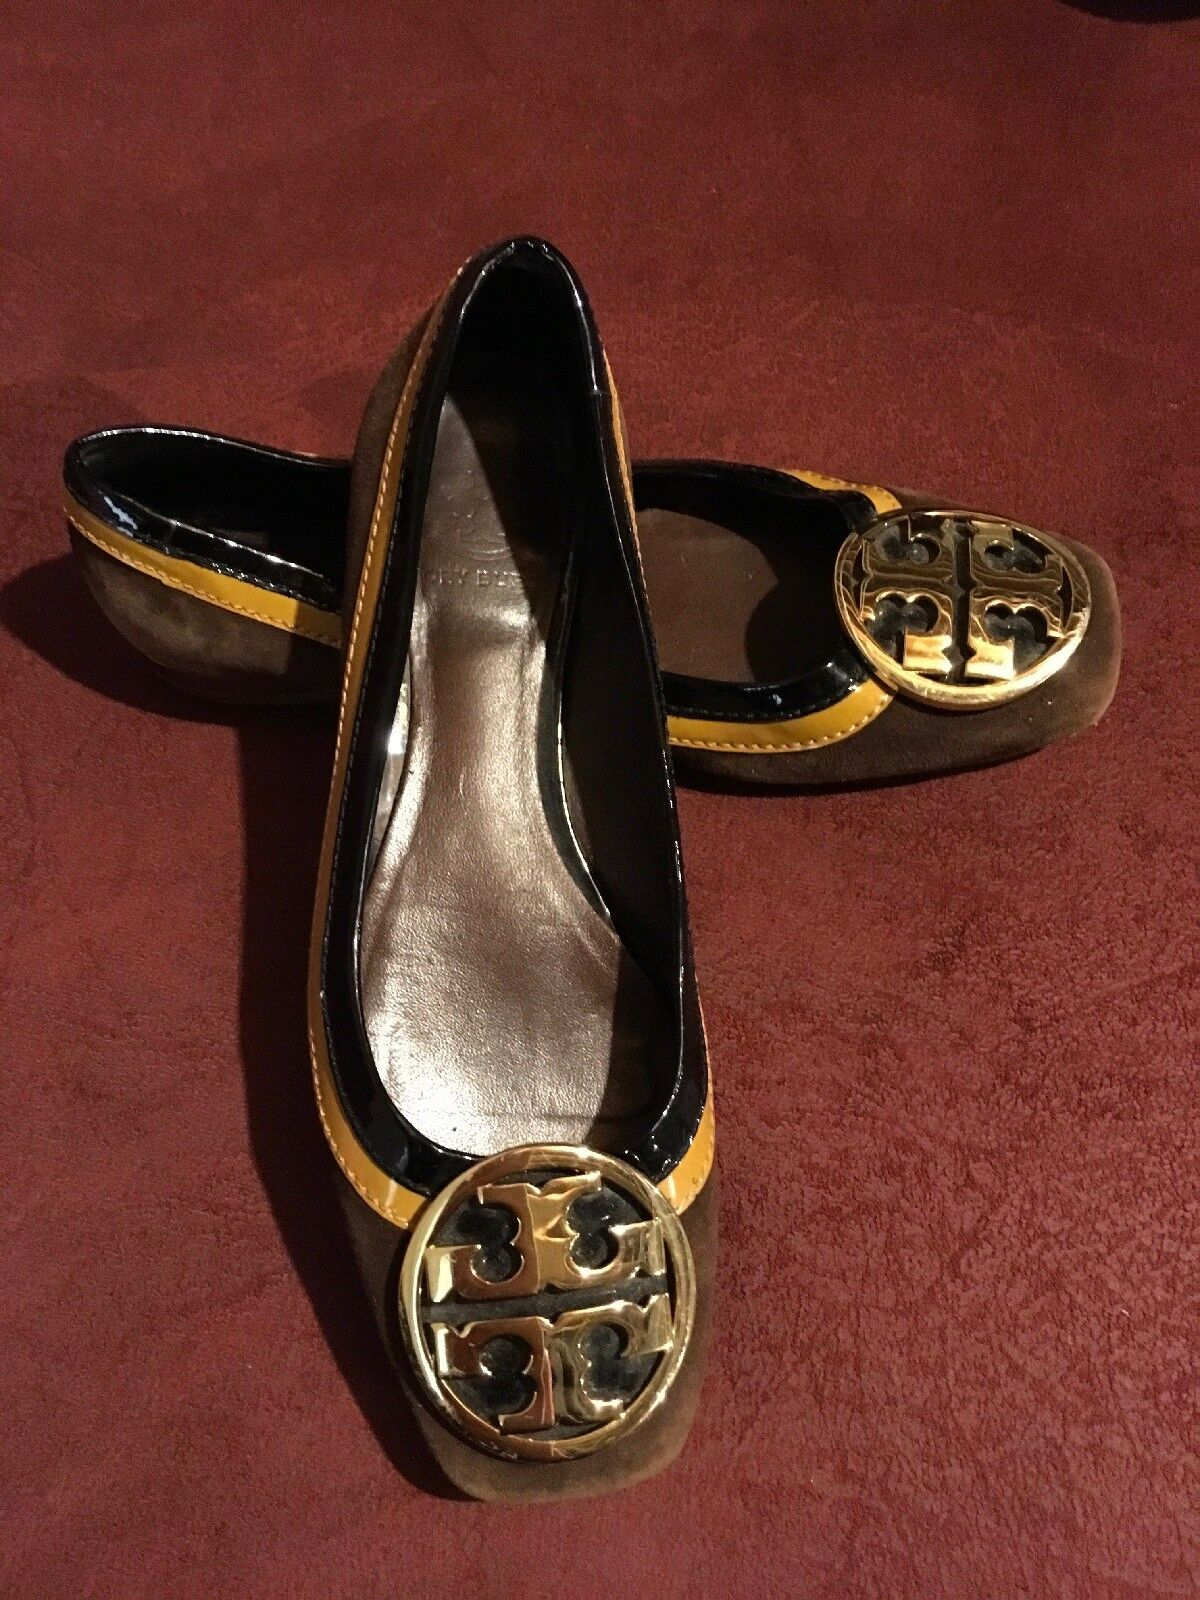 TORY BURCH    Suede Patent Leather Ballet Flats Size 6.5M Authentic 47b47b